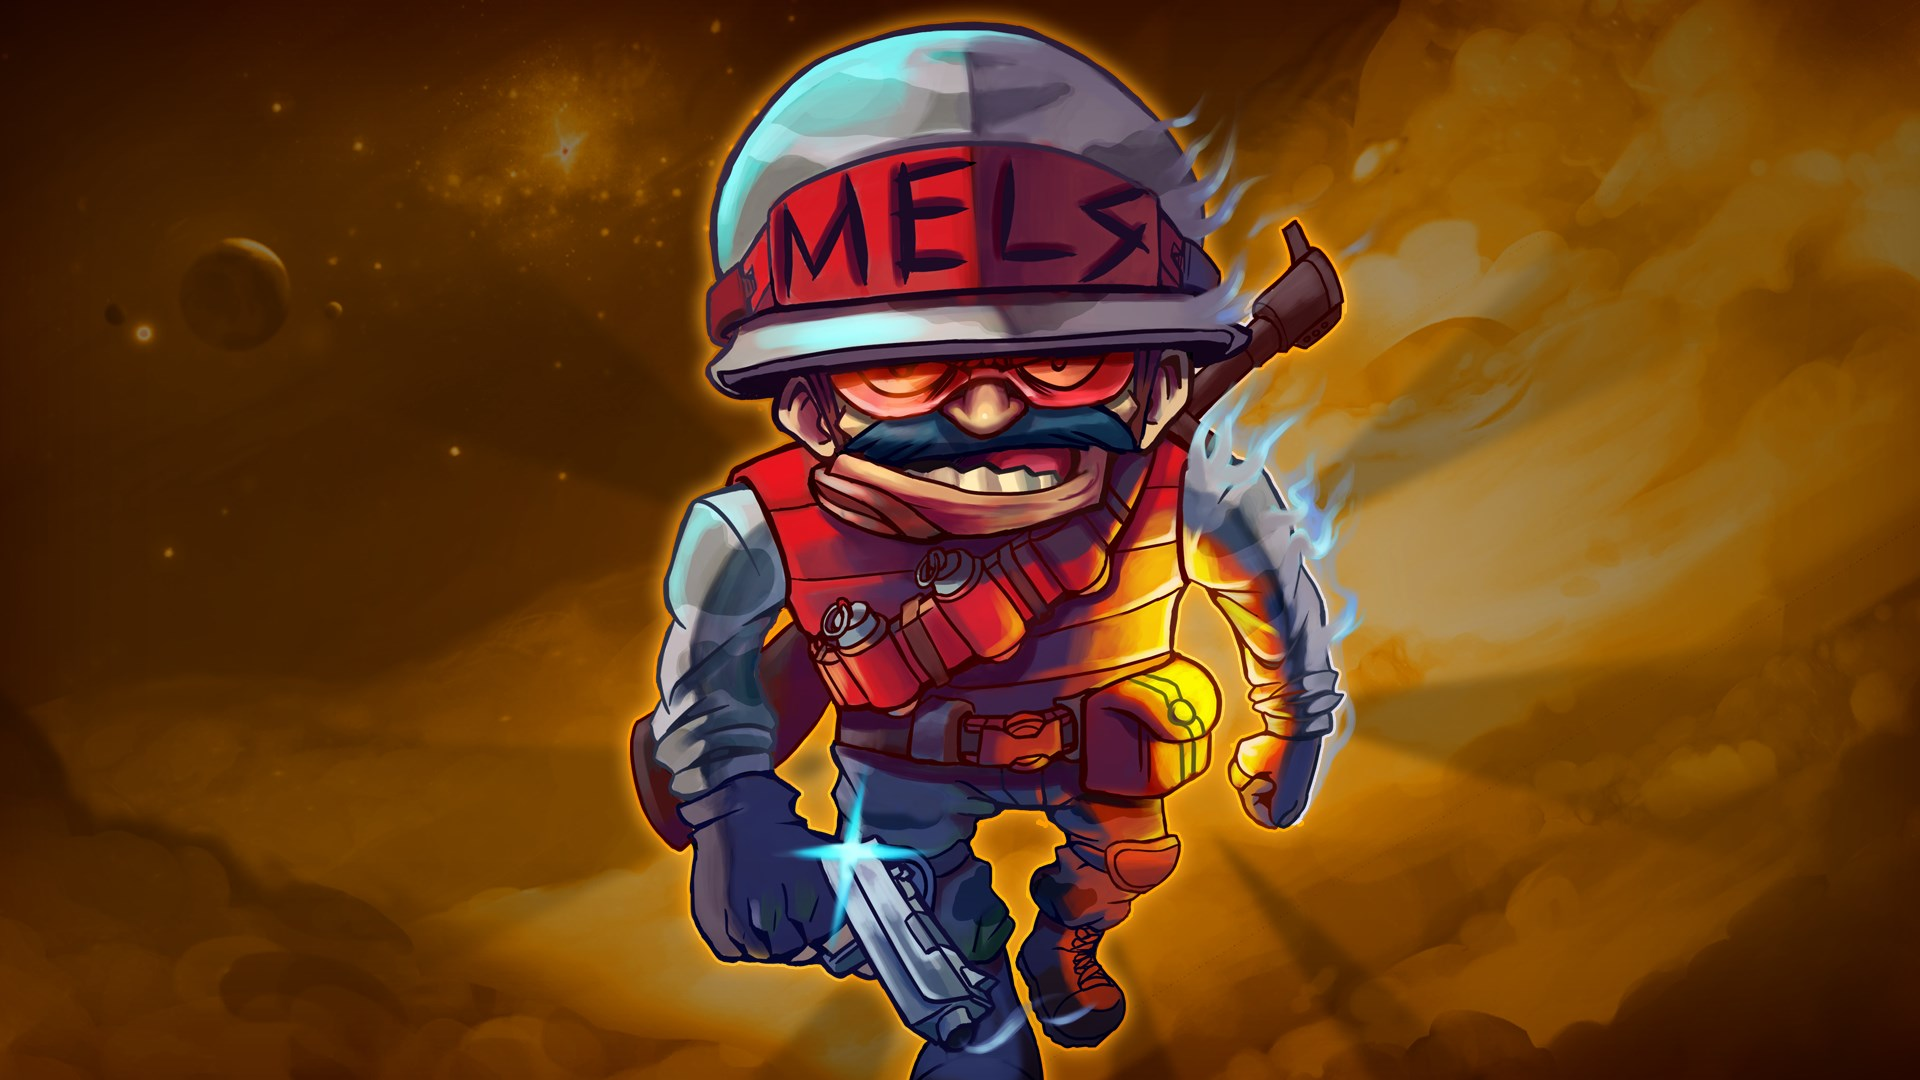 Облик — Private Mels - Awesomenauts Assemble!